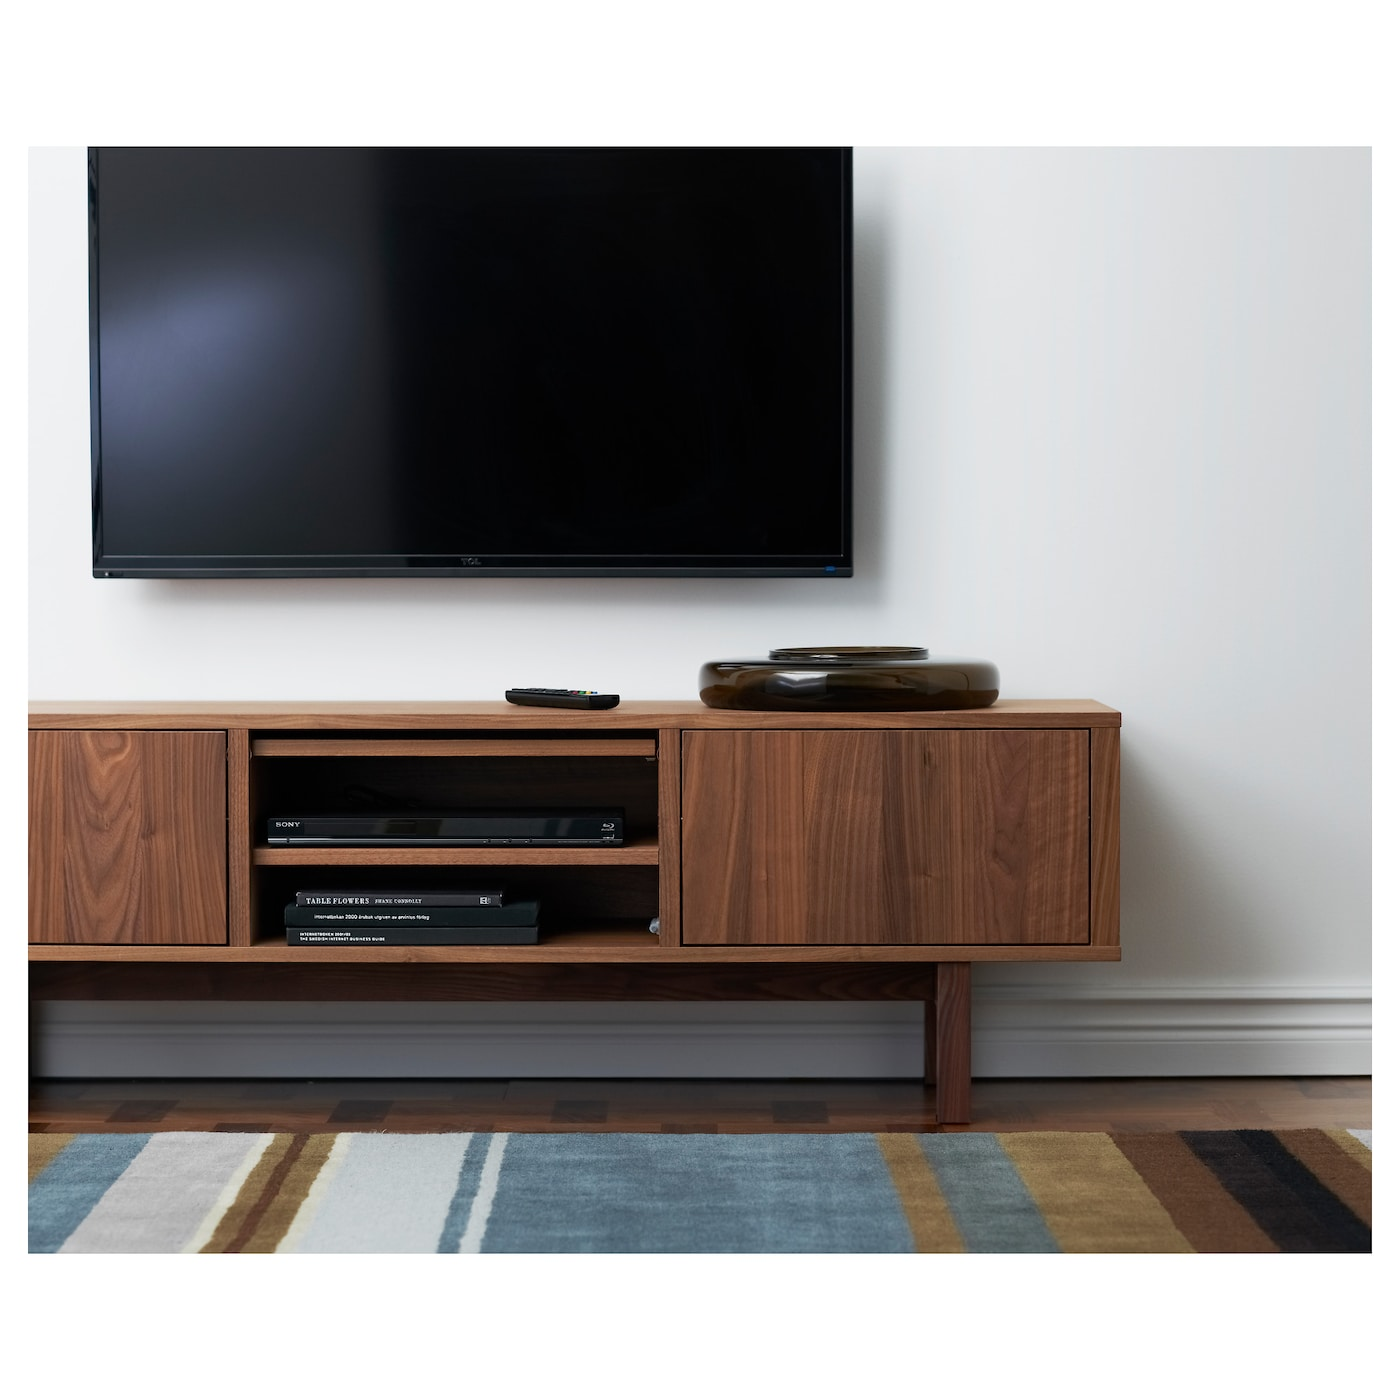 stockholm tv bench walnut veneer 160 x 40 x 50 cm ikea. Black Bedroom Furniture Sets. Home Design Ideas